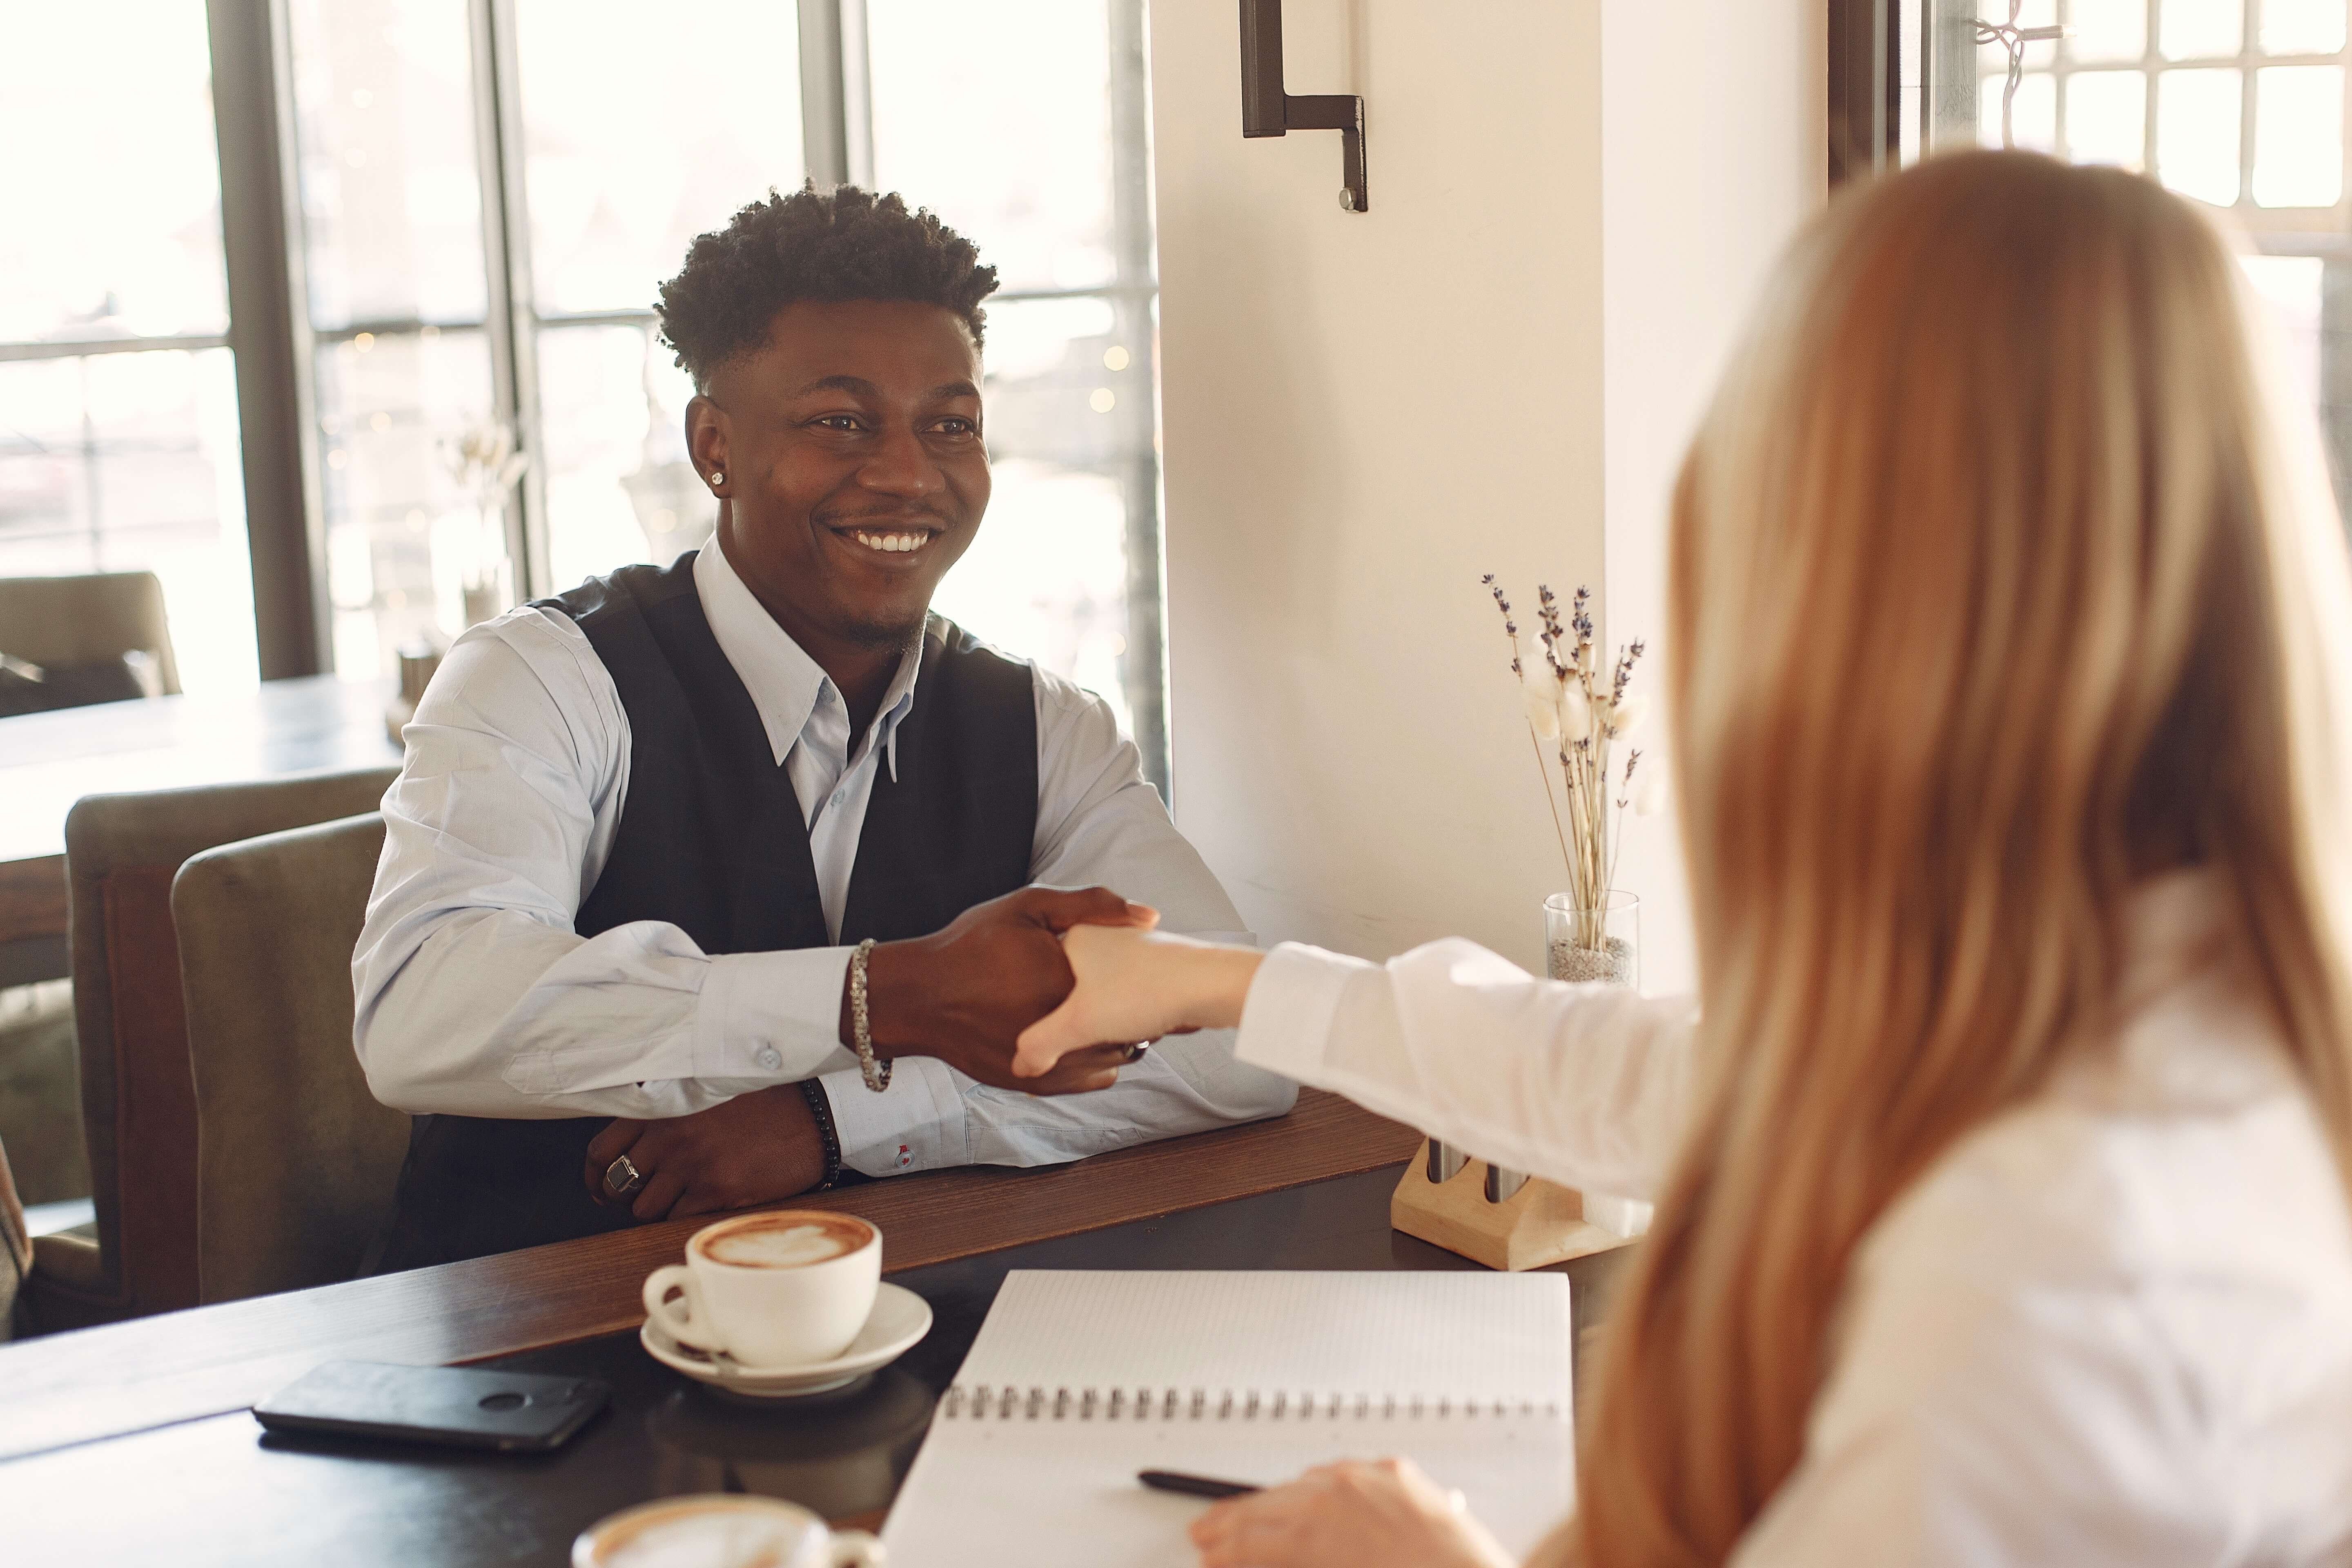 tips that will help you ace your interview and be on top of the leaderboard for candidates